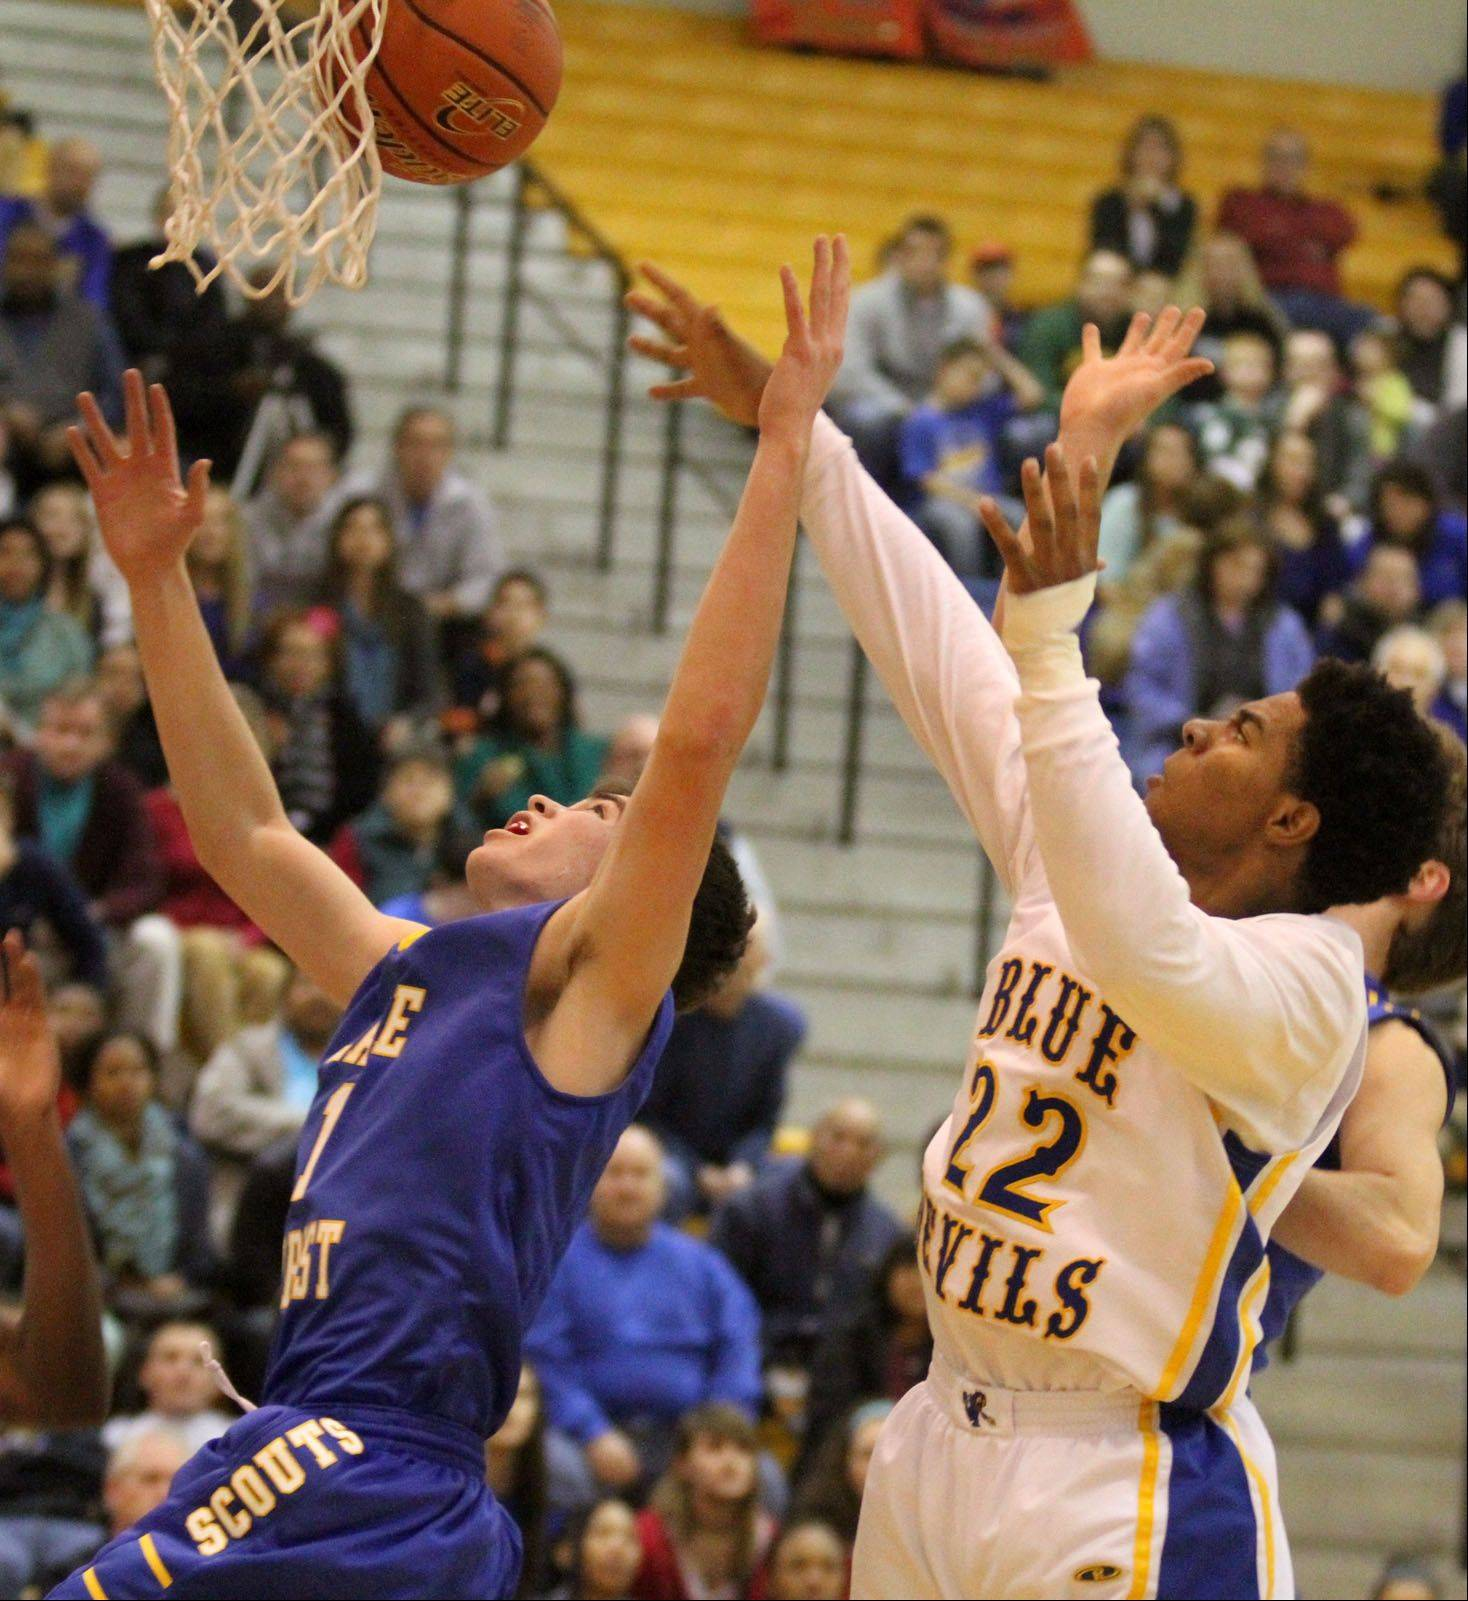 Warren's Derek Mason leaps for a rebound against Lake Forest defender Ben Simpson in Gurnee on Friday.